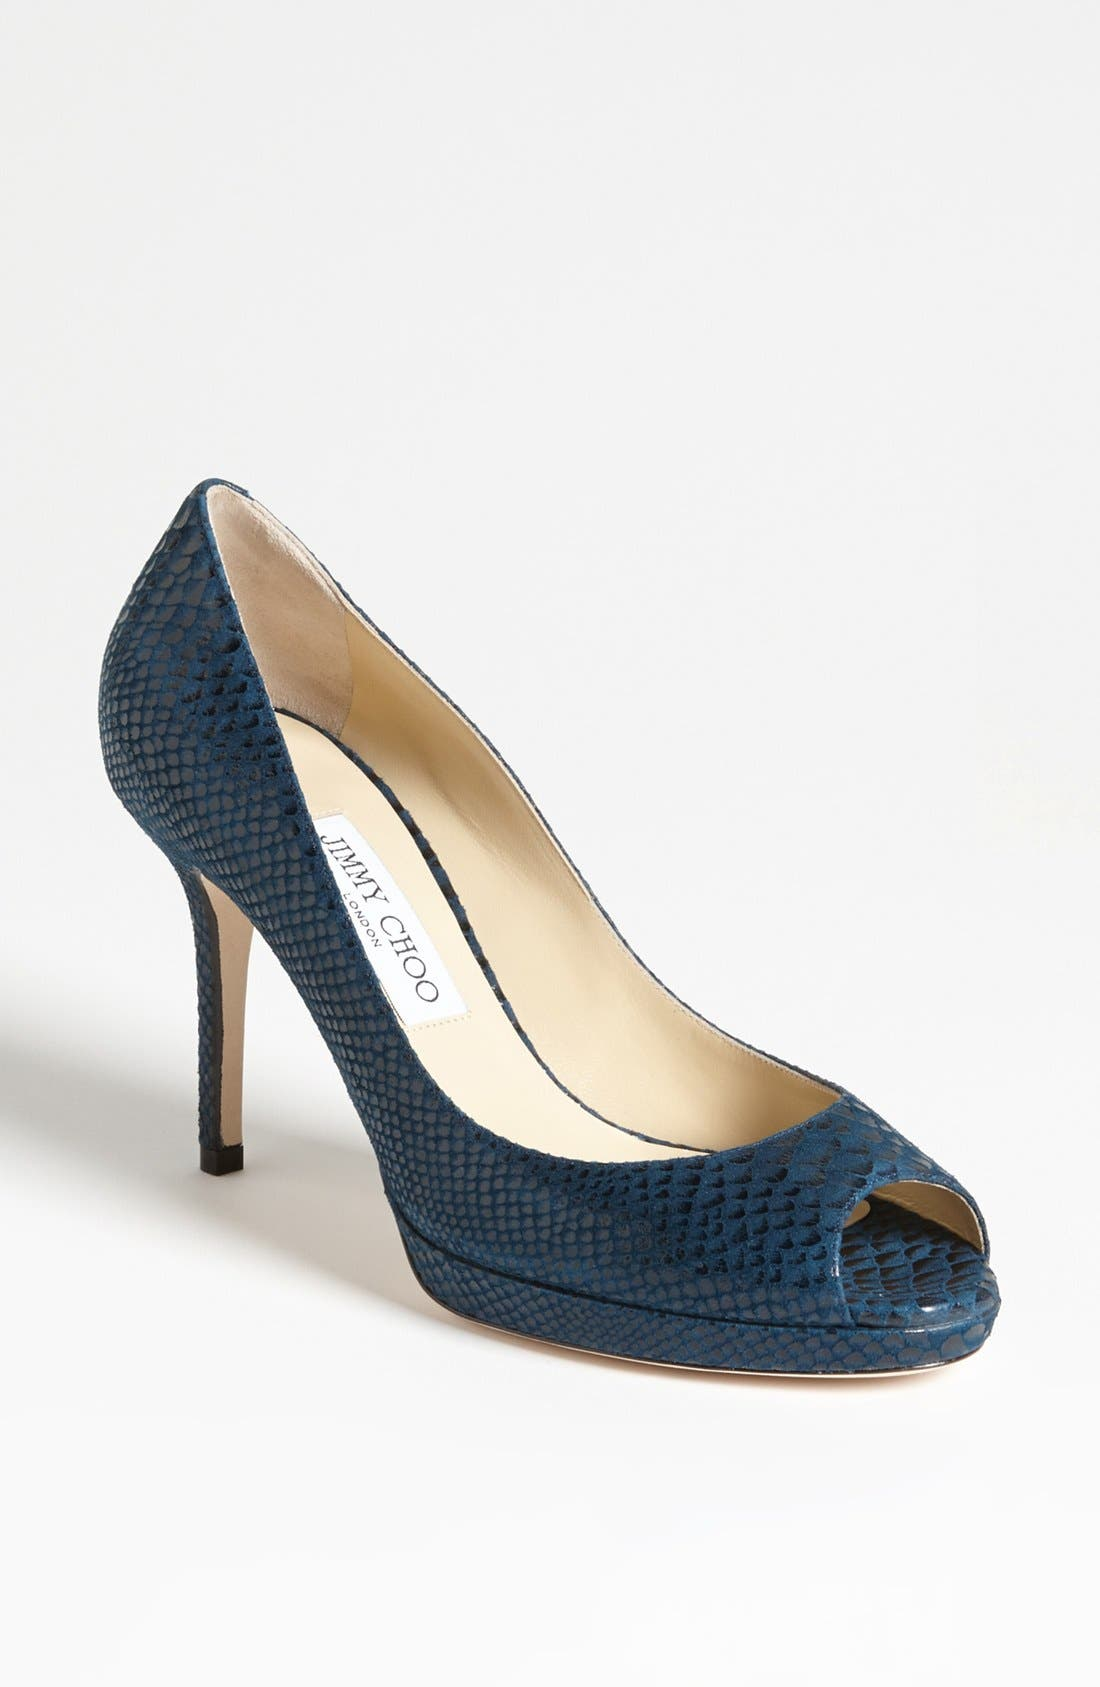 Alternate Image 1 Selected - Jimmy Choo 'Alpha' Pump